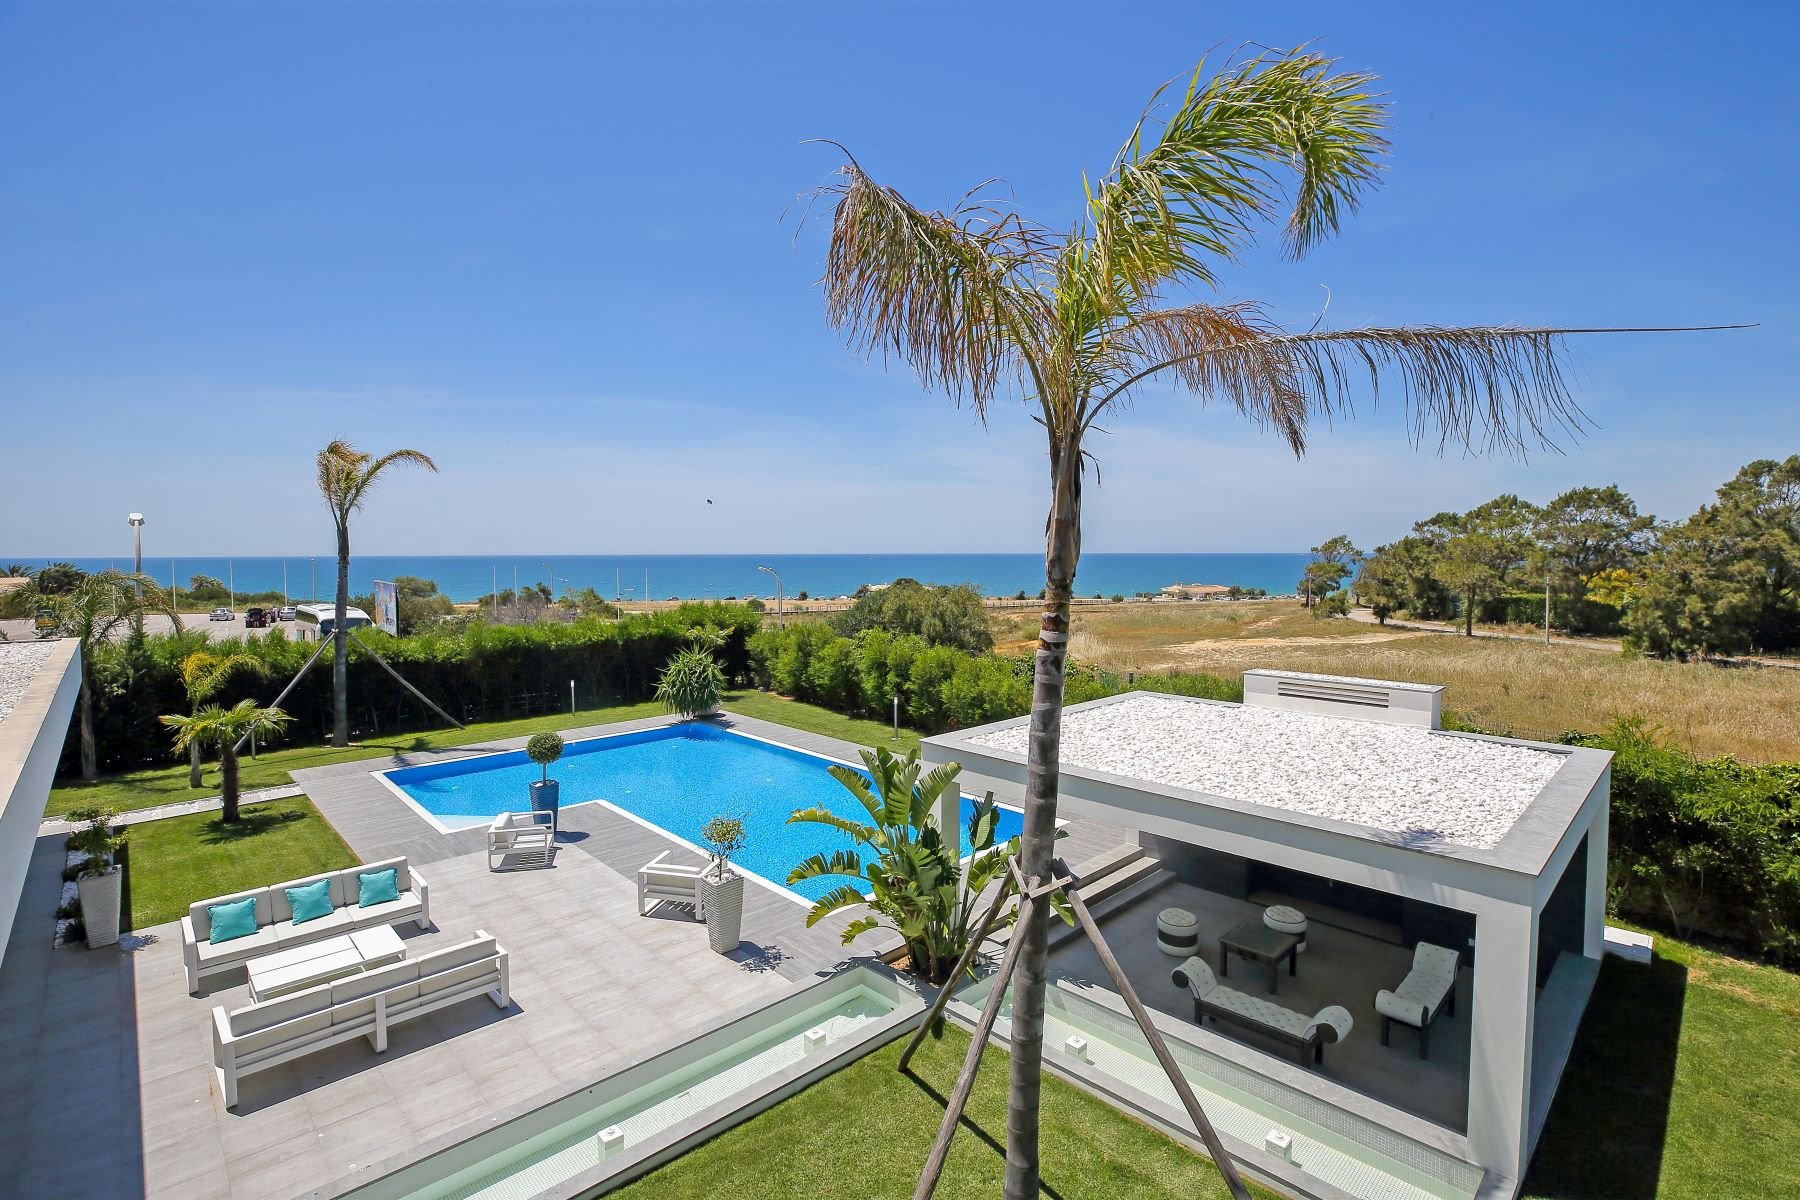 Single Family Home for Sale at Detached house, 4 bedrooms, for Sale Albufeira, Algarve, Portugal